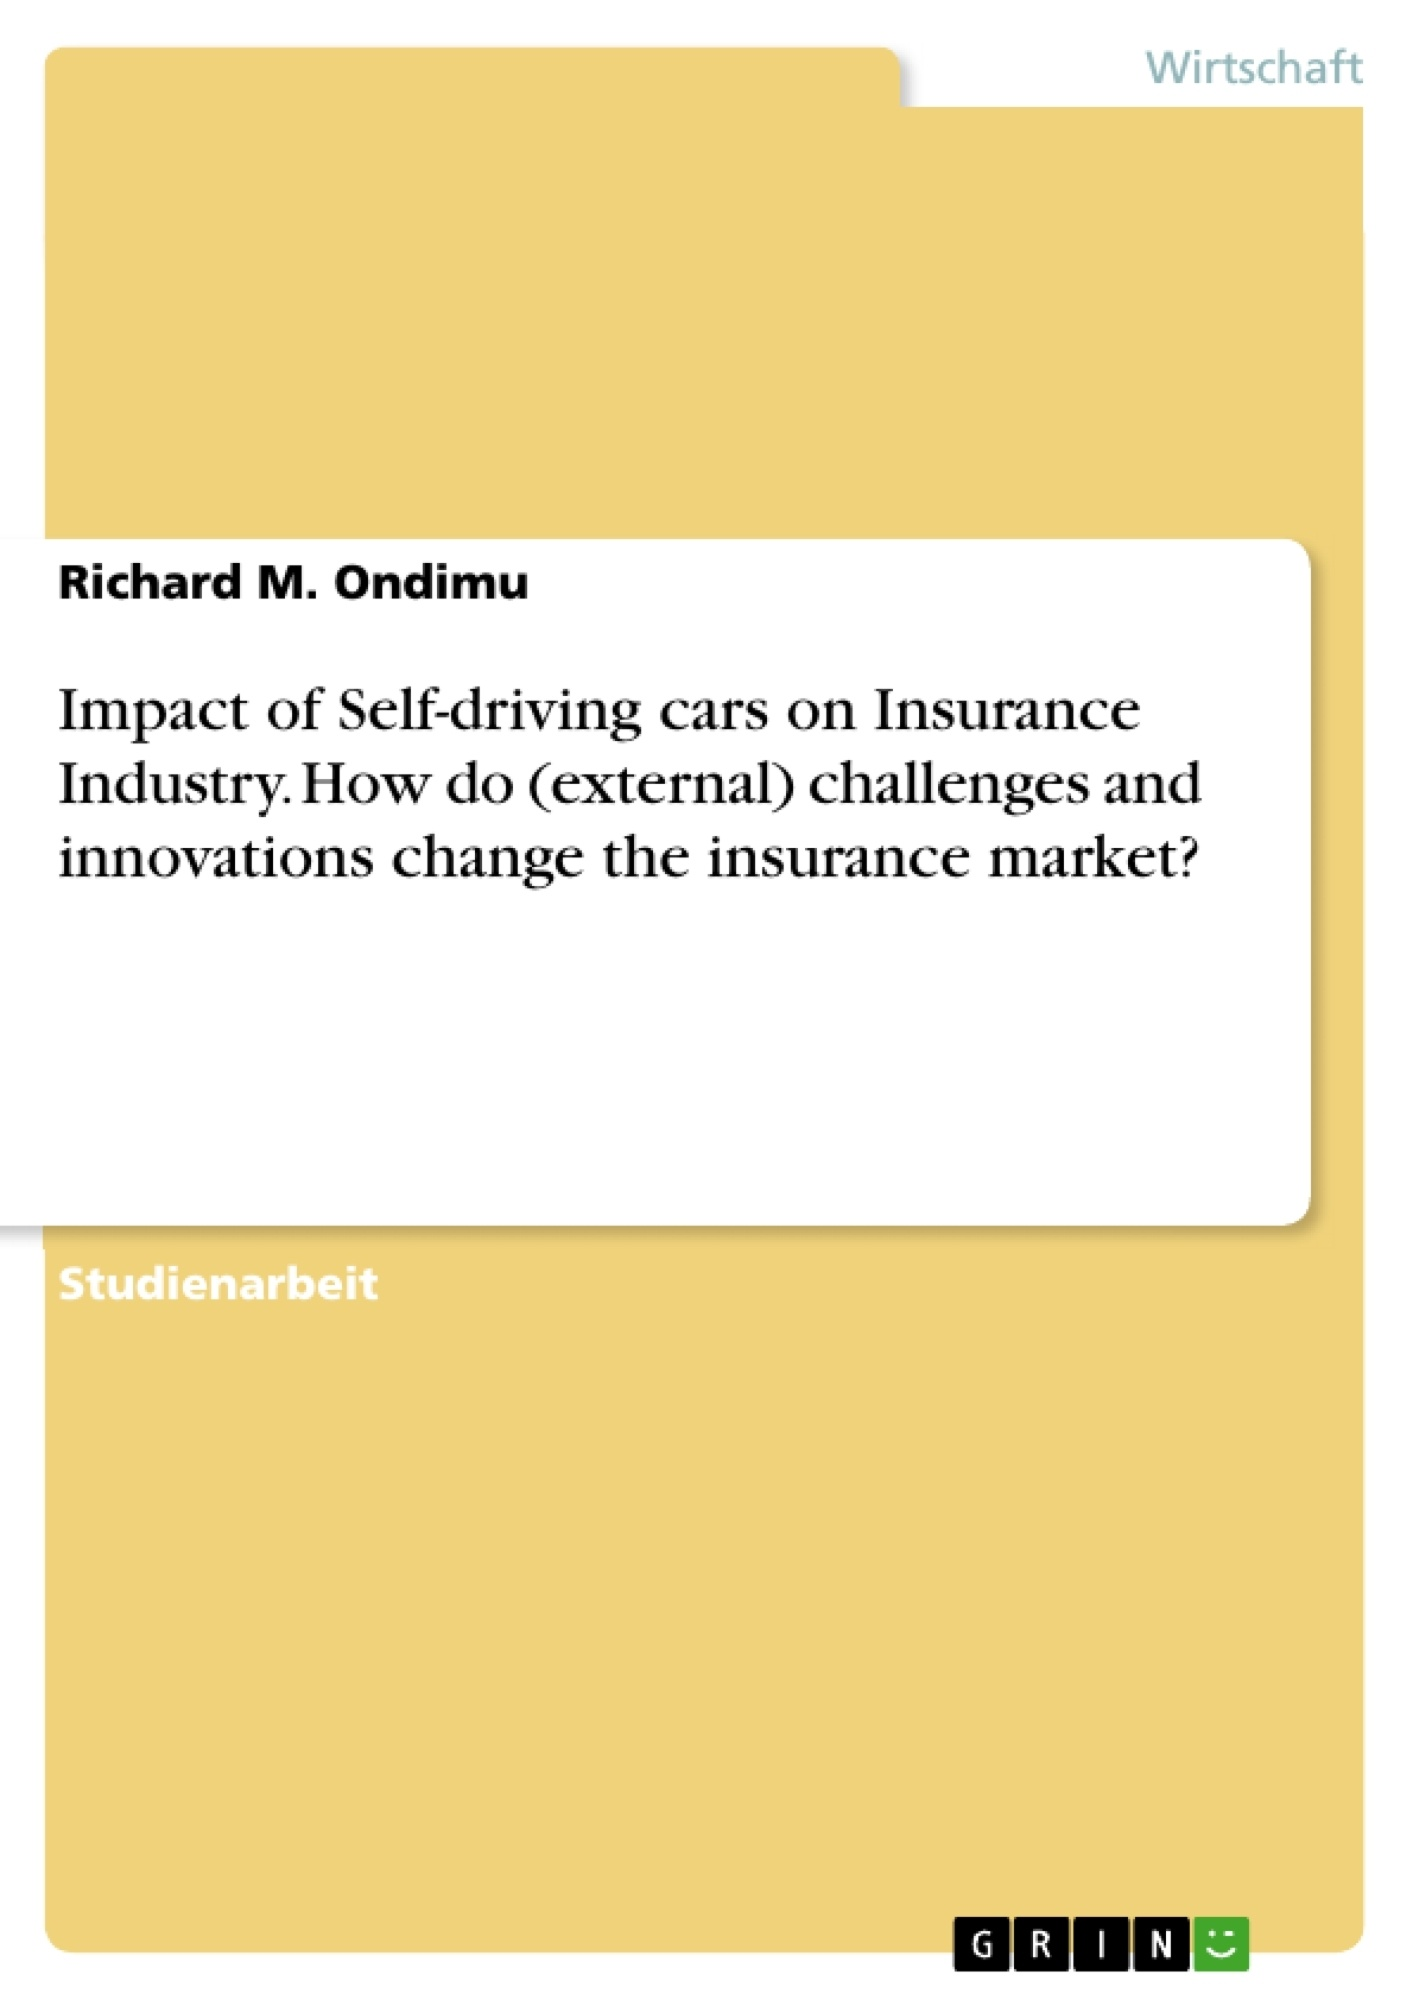 Titel: Impact of Self-driving cars on Insurance Industry. How do (external) challenges and innovations change the insurance market?